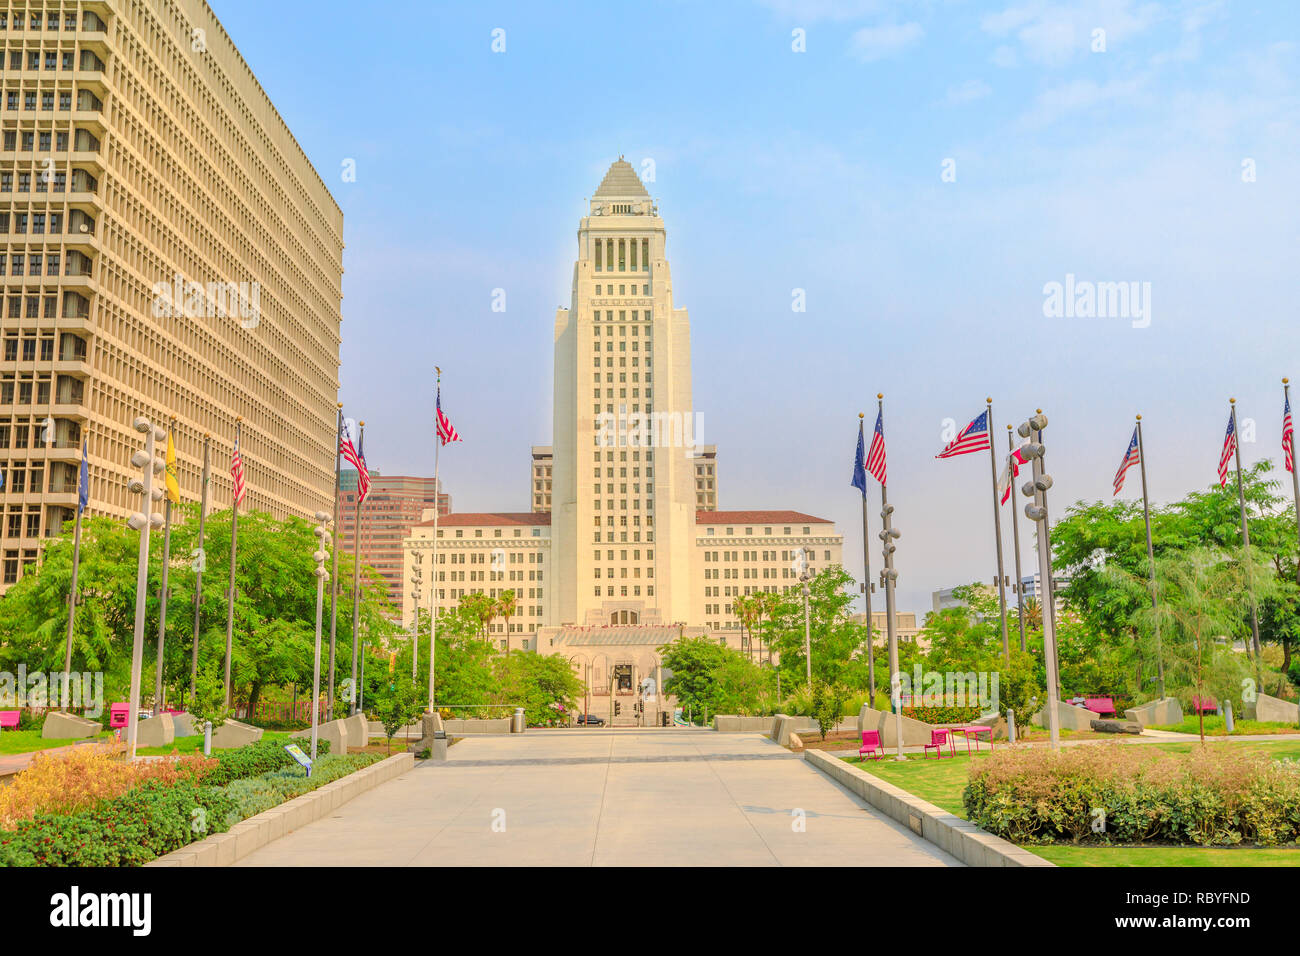 Front view of Los Angeles City Hall and Civic Center buildings in Downtown of LA. The building is home to the government and mayor of city of Los Angeles, California, United States. Urban cityscape. Stock Photo